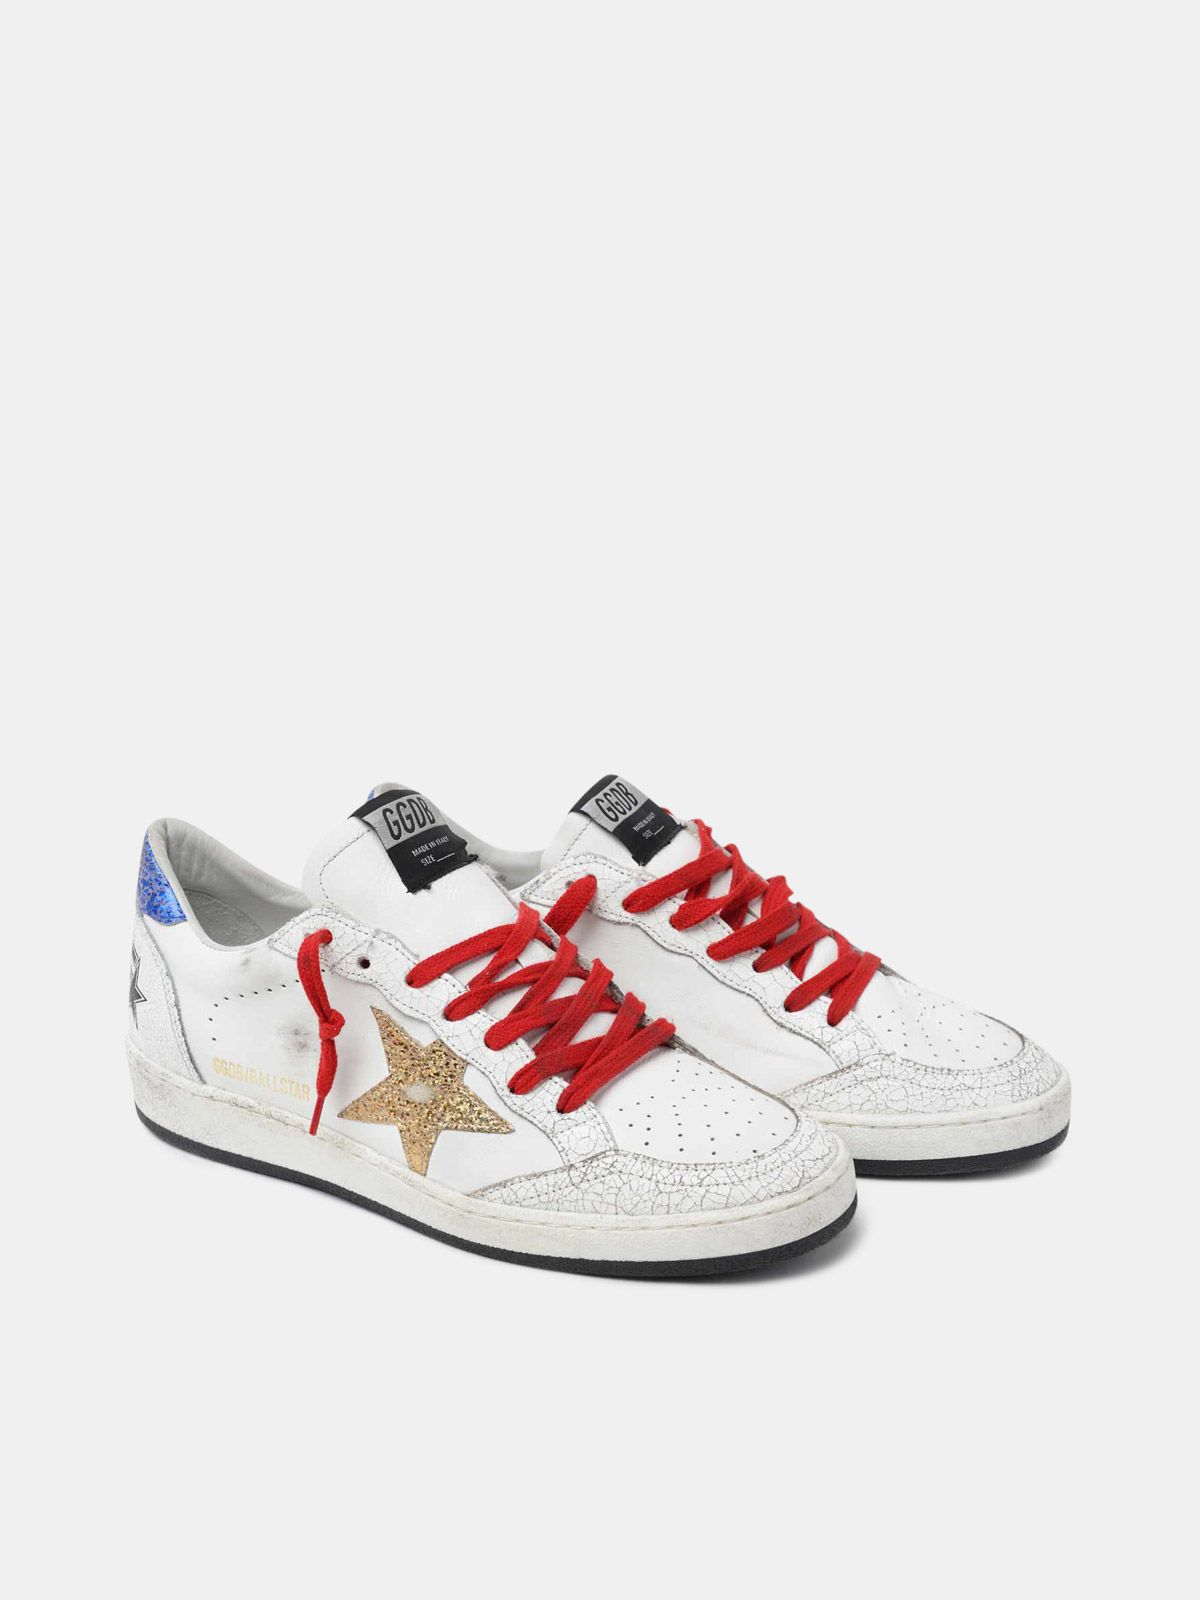 Golden Goose - White Ball Star sneakers with gold star and blue heel tab in